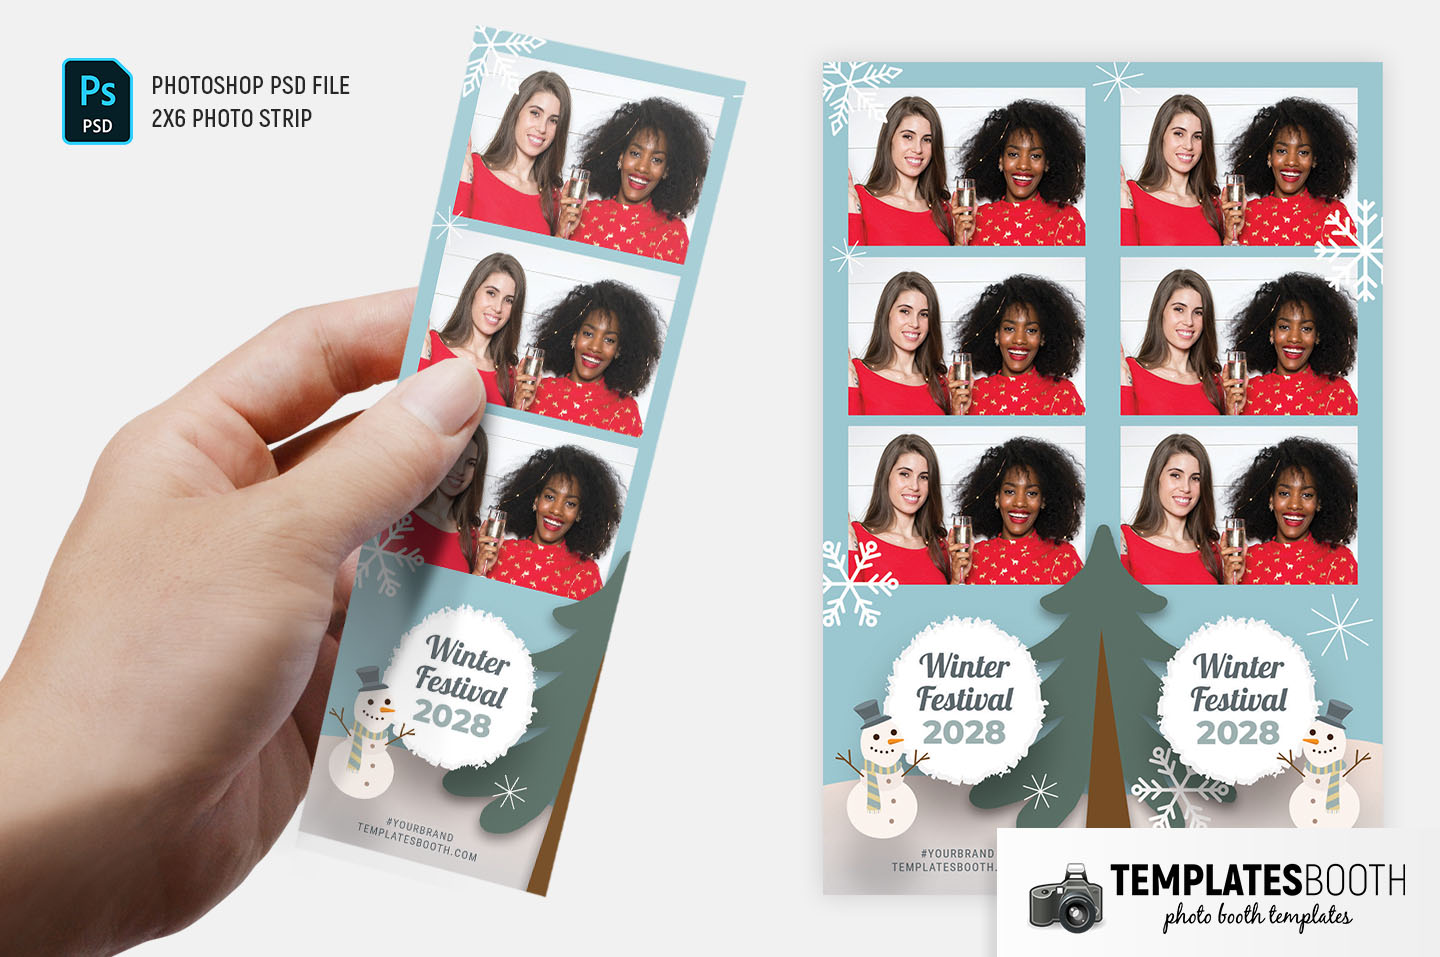 Winter Festival Photo Booth Template (2x6 strip)